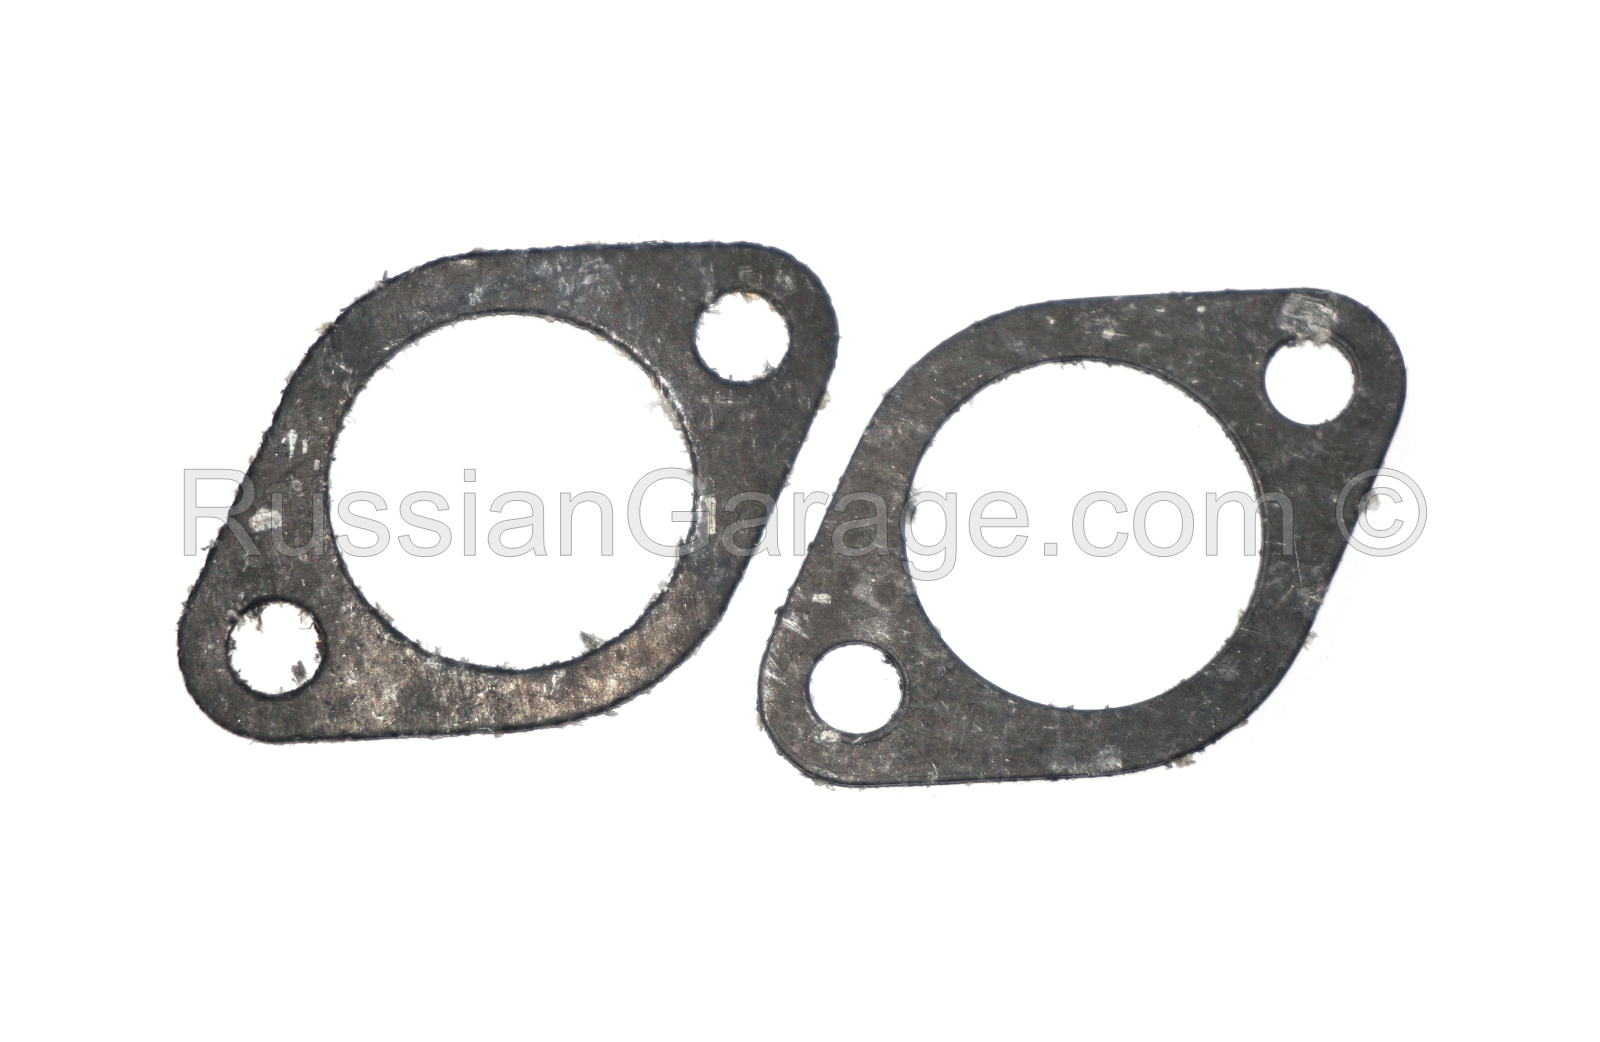 Carburetor paronite gaskets 1mm thickness (set of ...